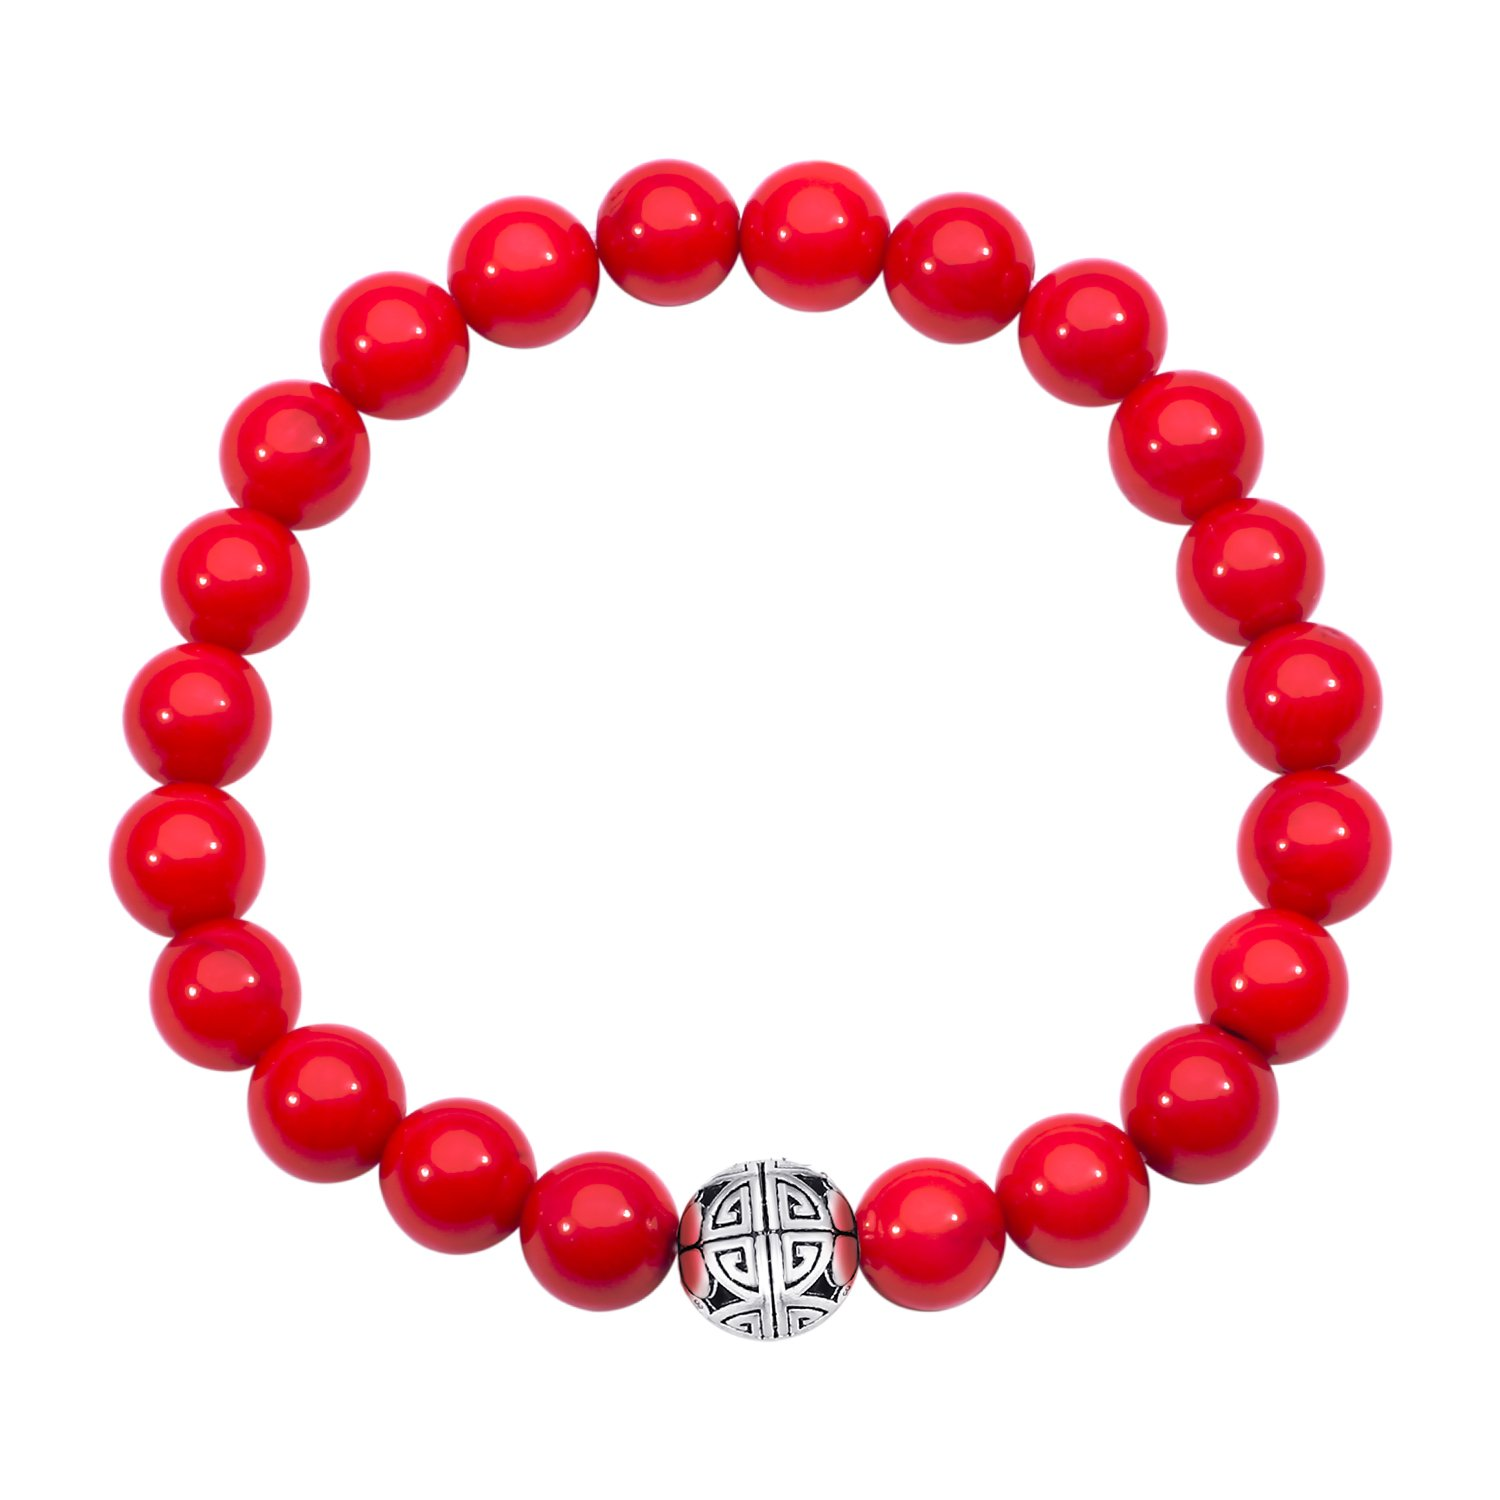 MetJakt Natural 8mm Gemstones Healing Crystal Stretch Beaded Bracelet Bangle 925 Silver Double Happiness Pendant (Red Coral)